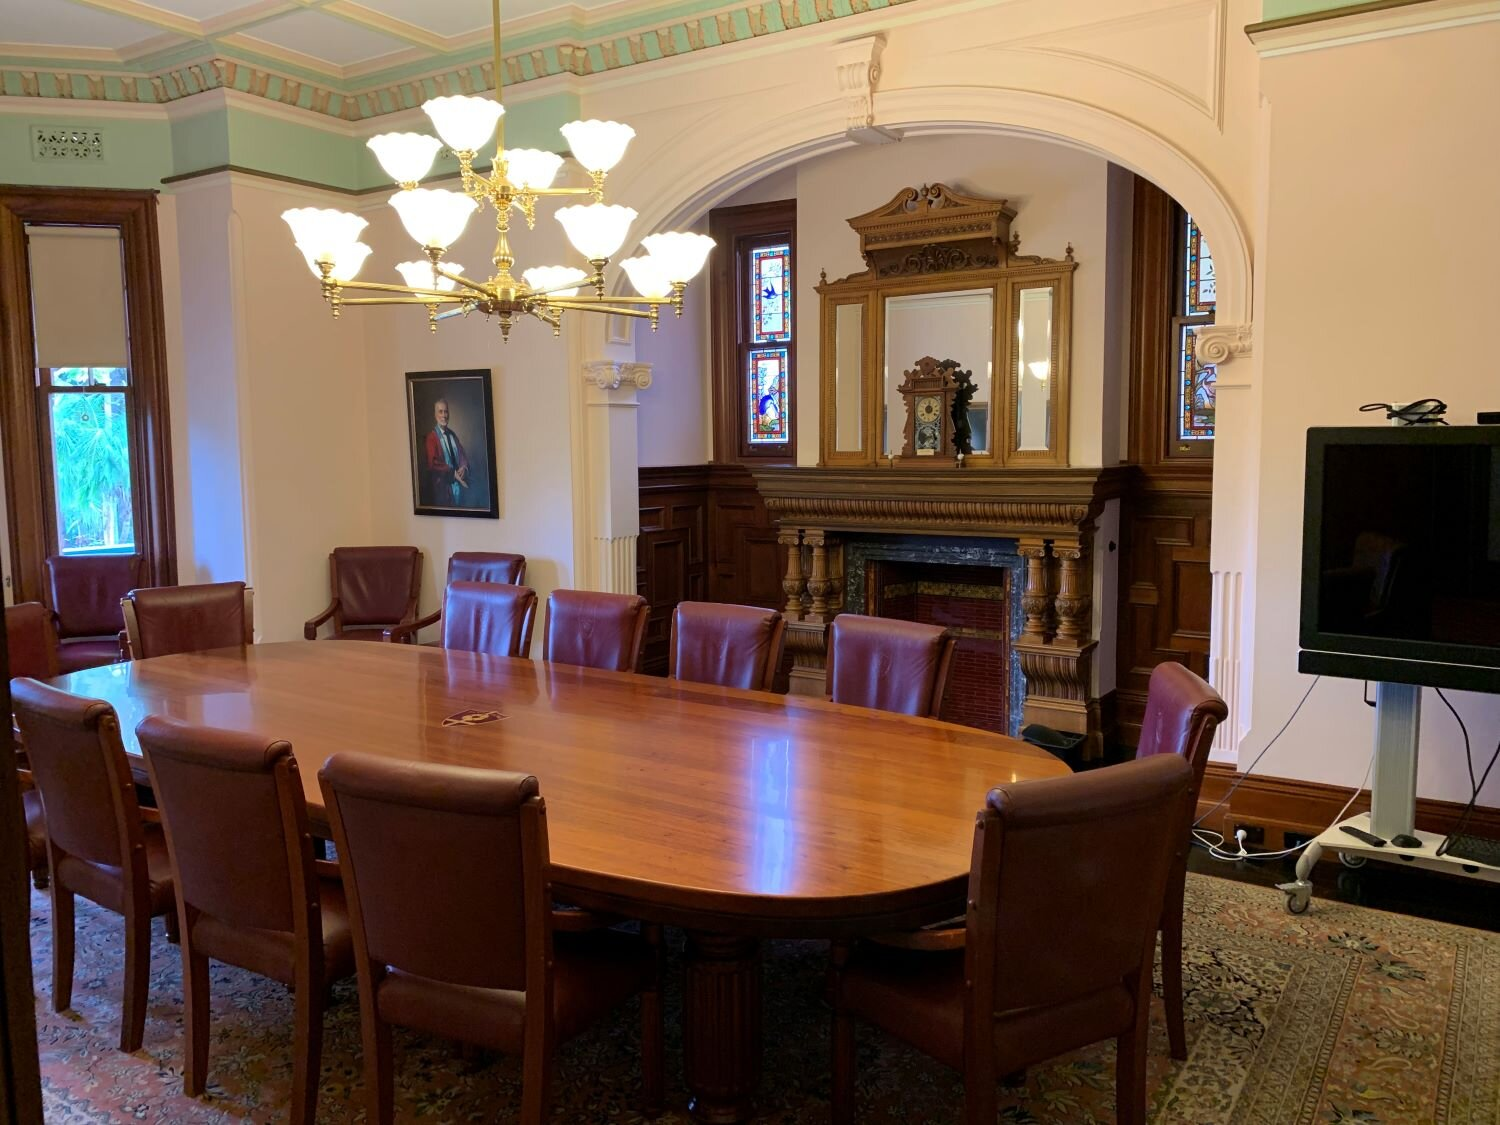 The delivered and restored boardroom table